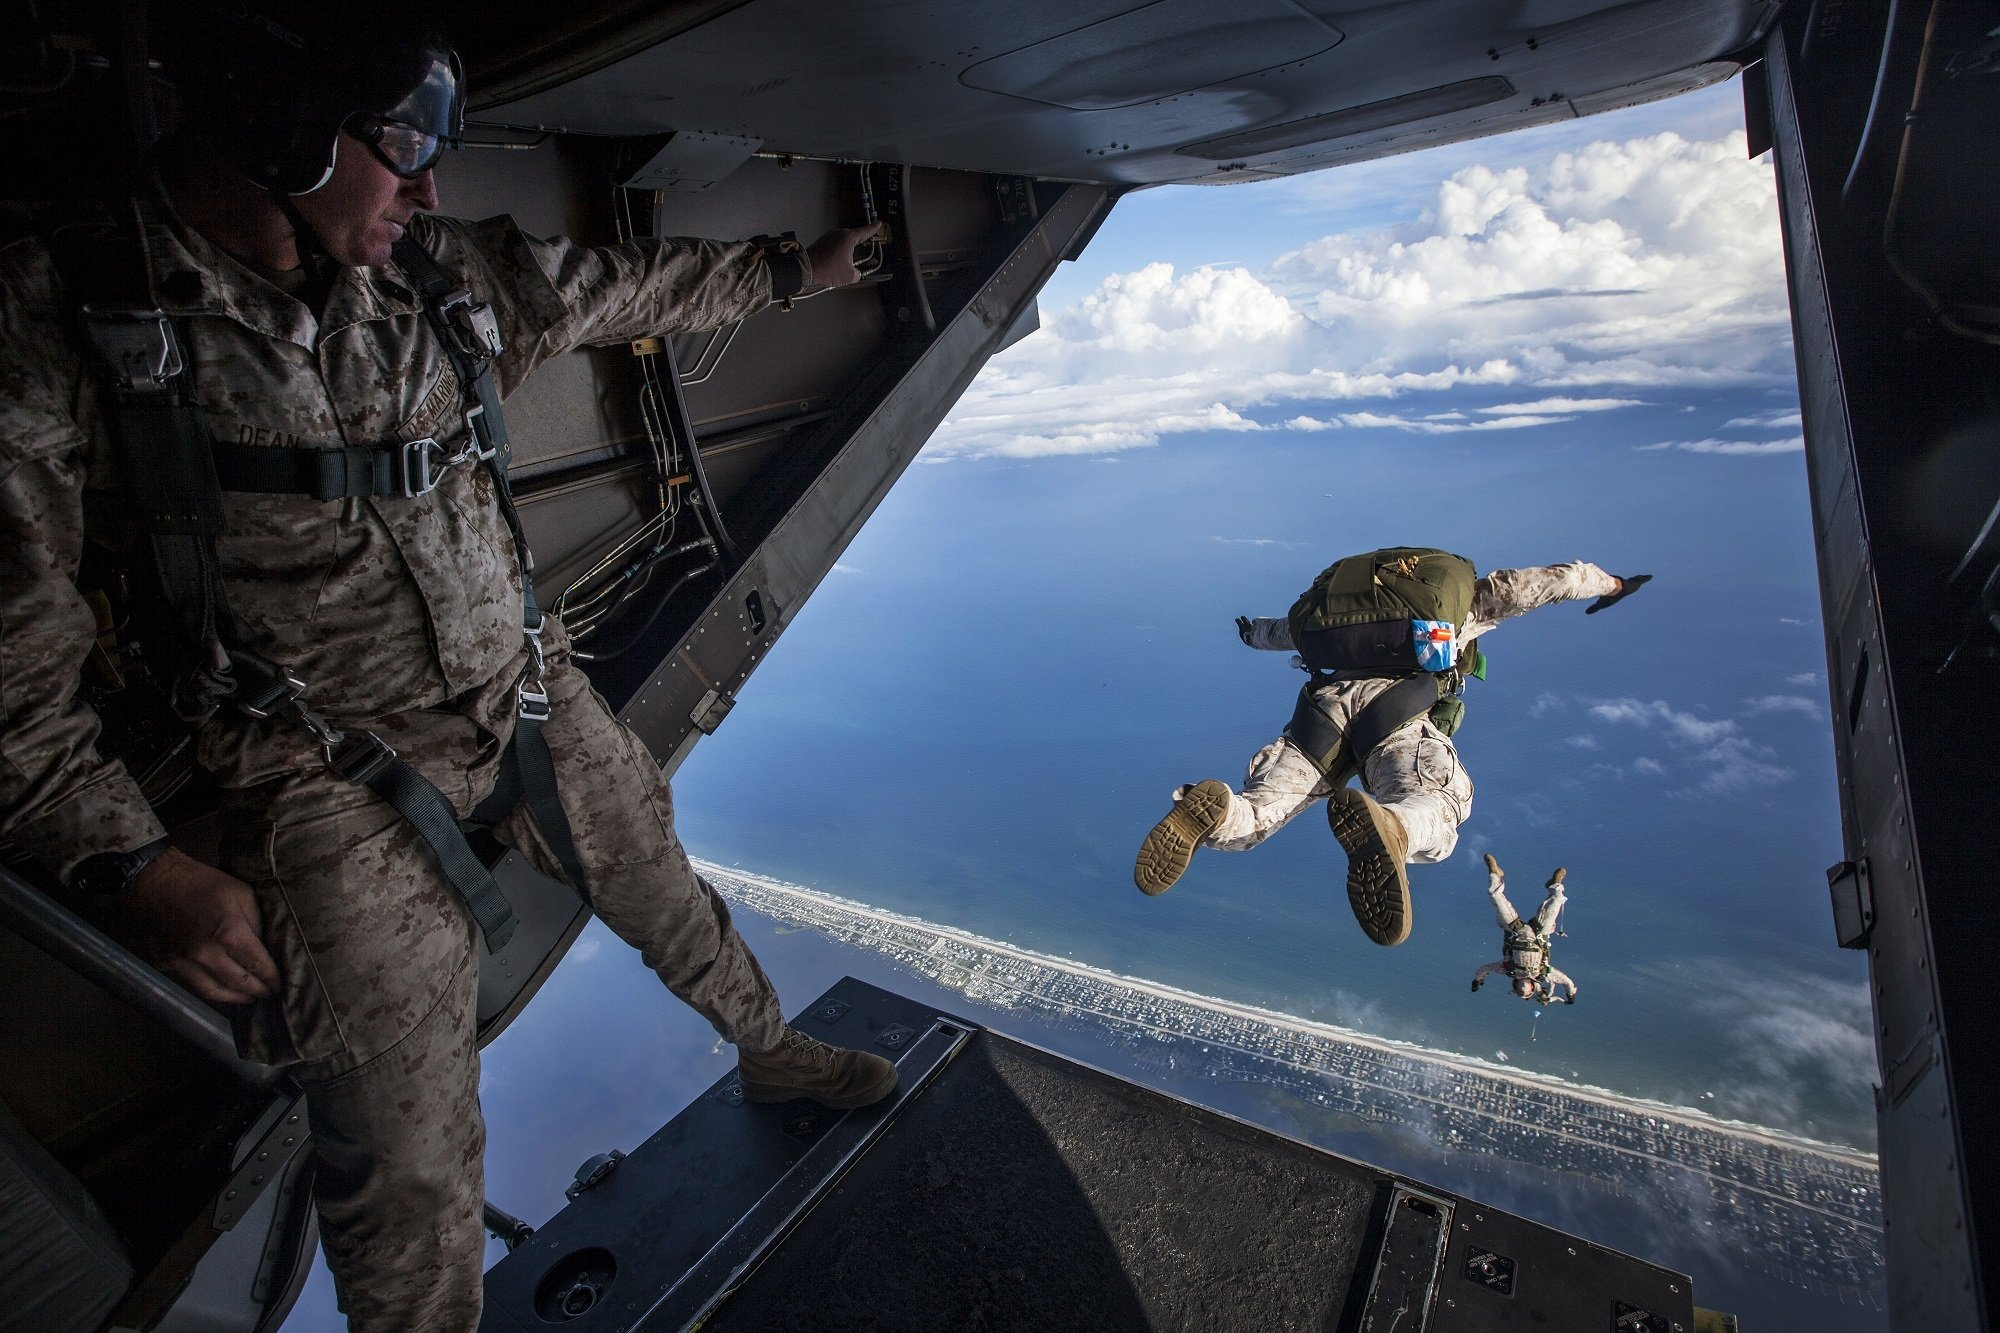 military personnel skydiving